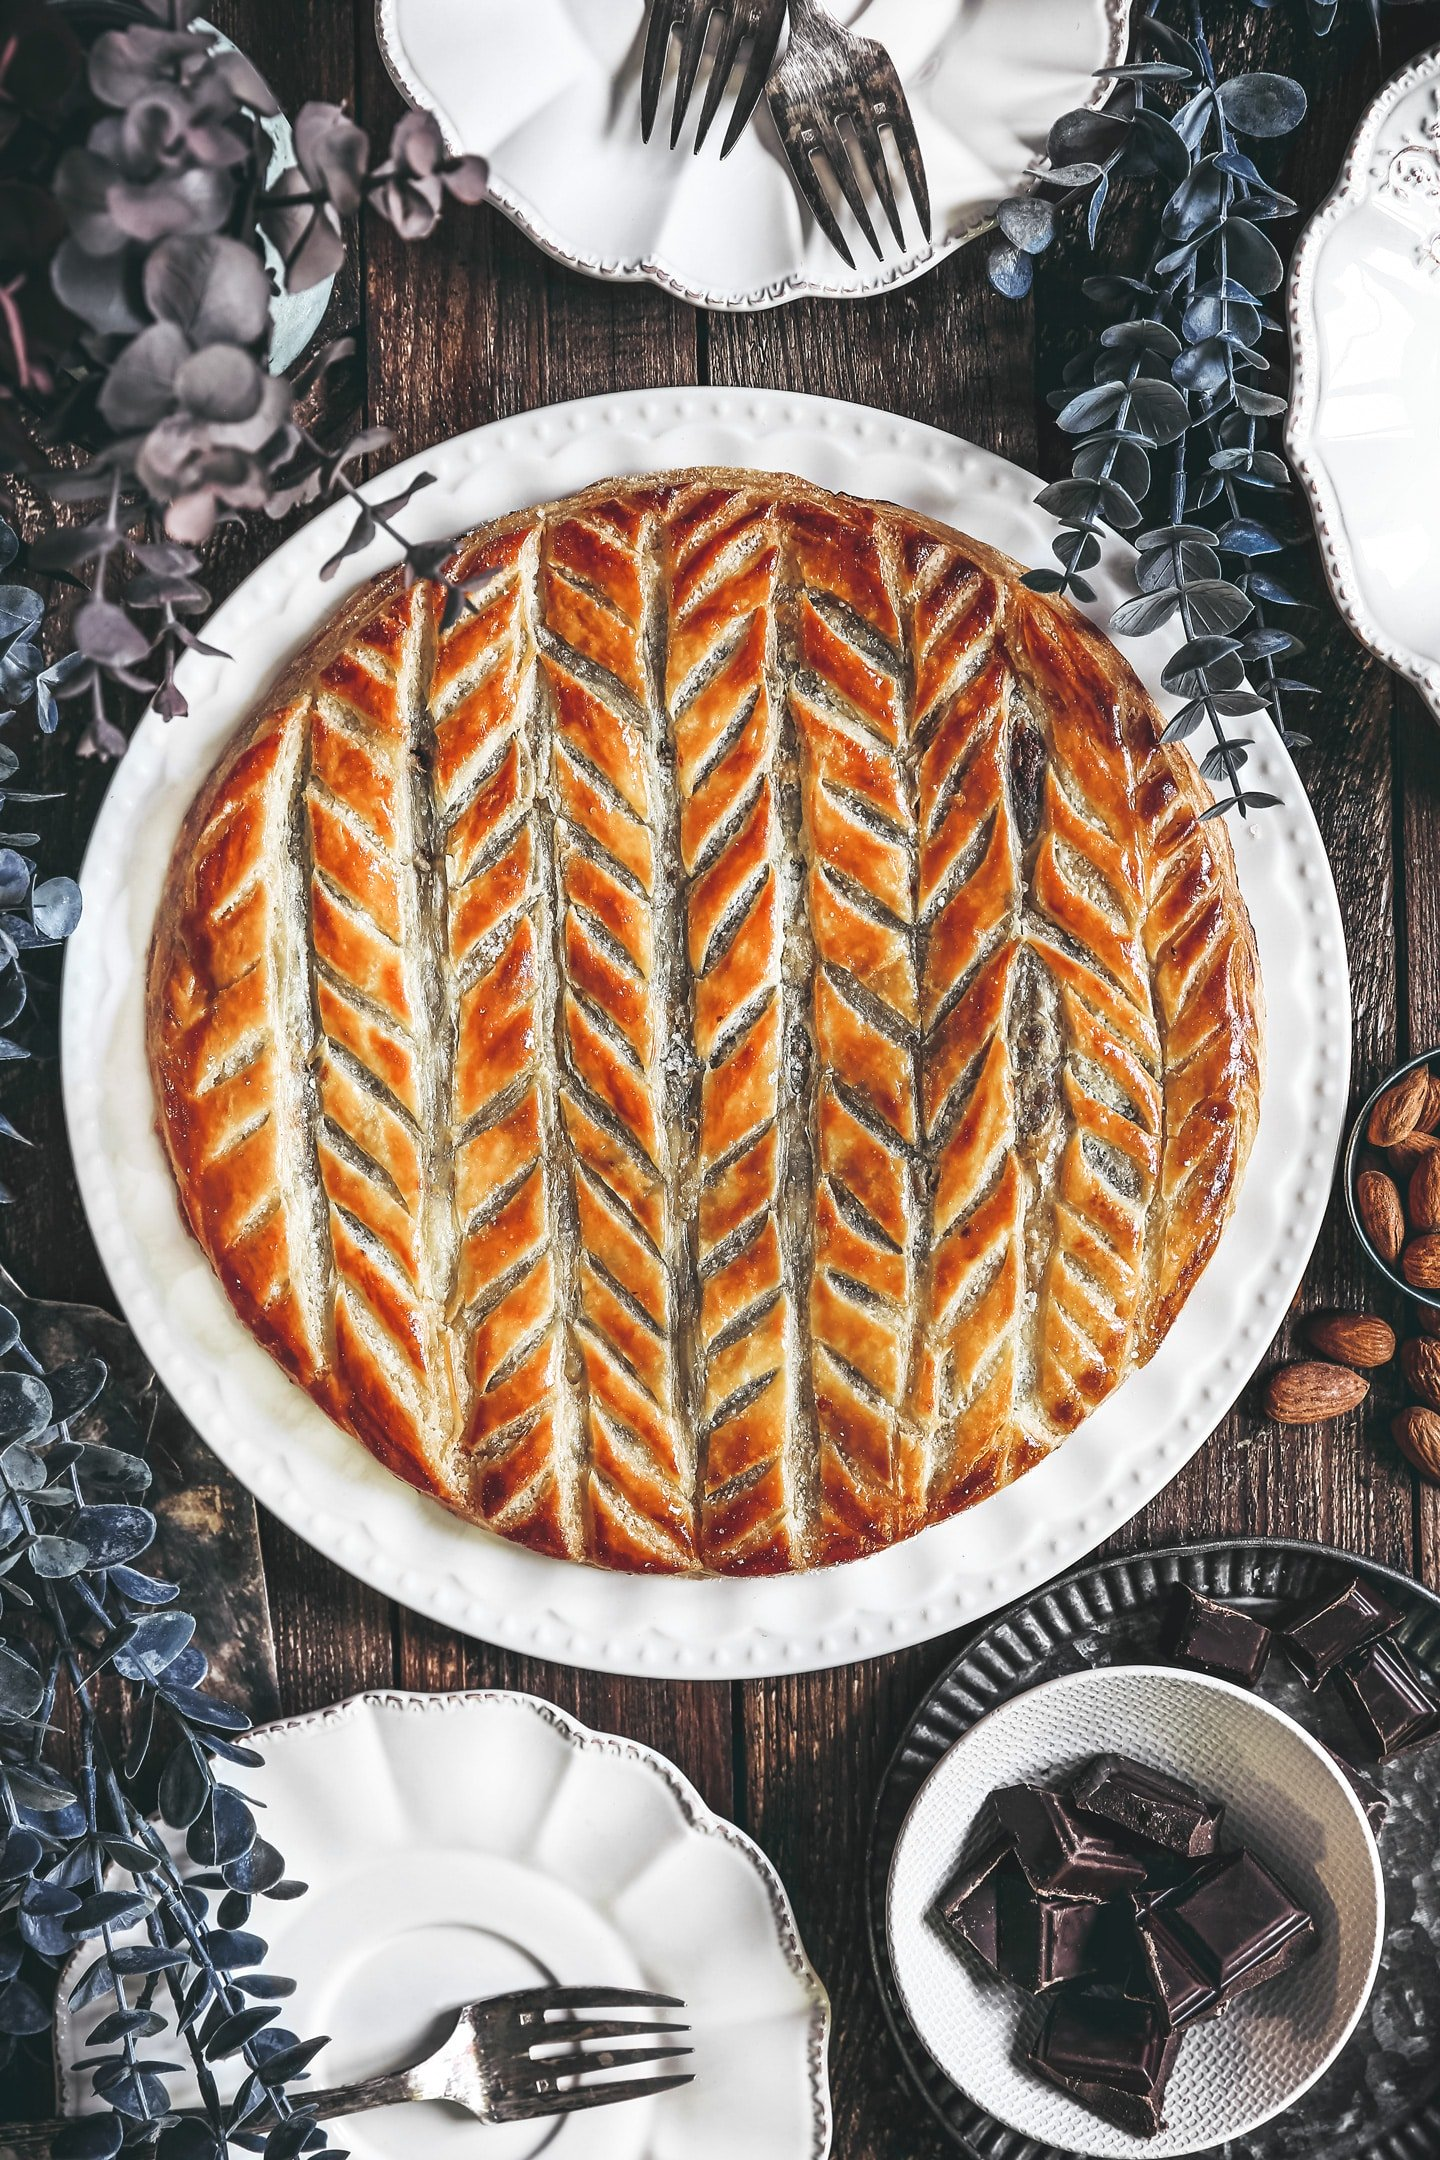 The french galette des rois